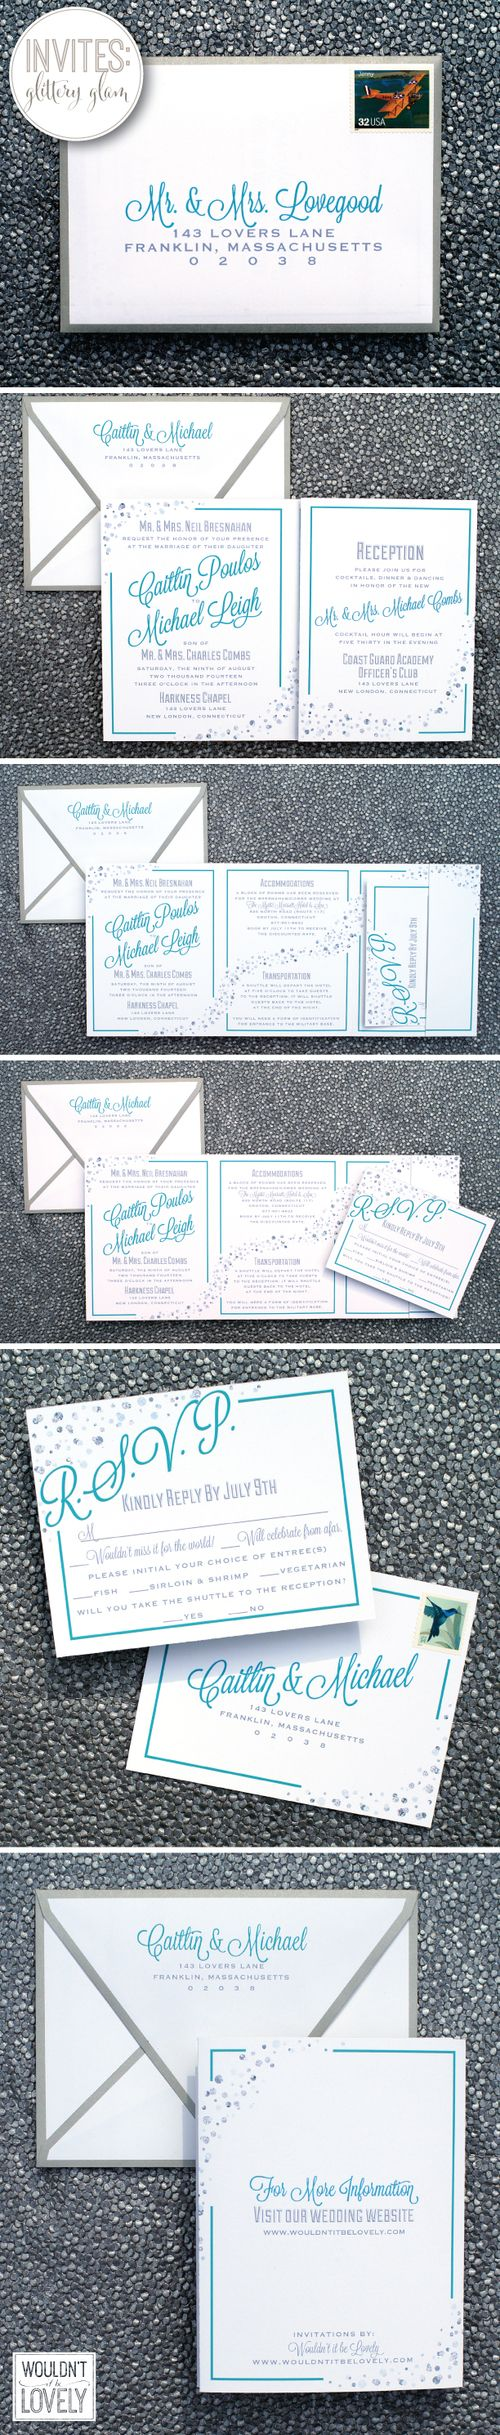 glittery glam custom designed wedding invitations, glittery silver dots, teal and silver wedding invites, wedding invitation suite, fold out wedding invites, Wouldn't it be Lovely